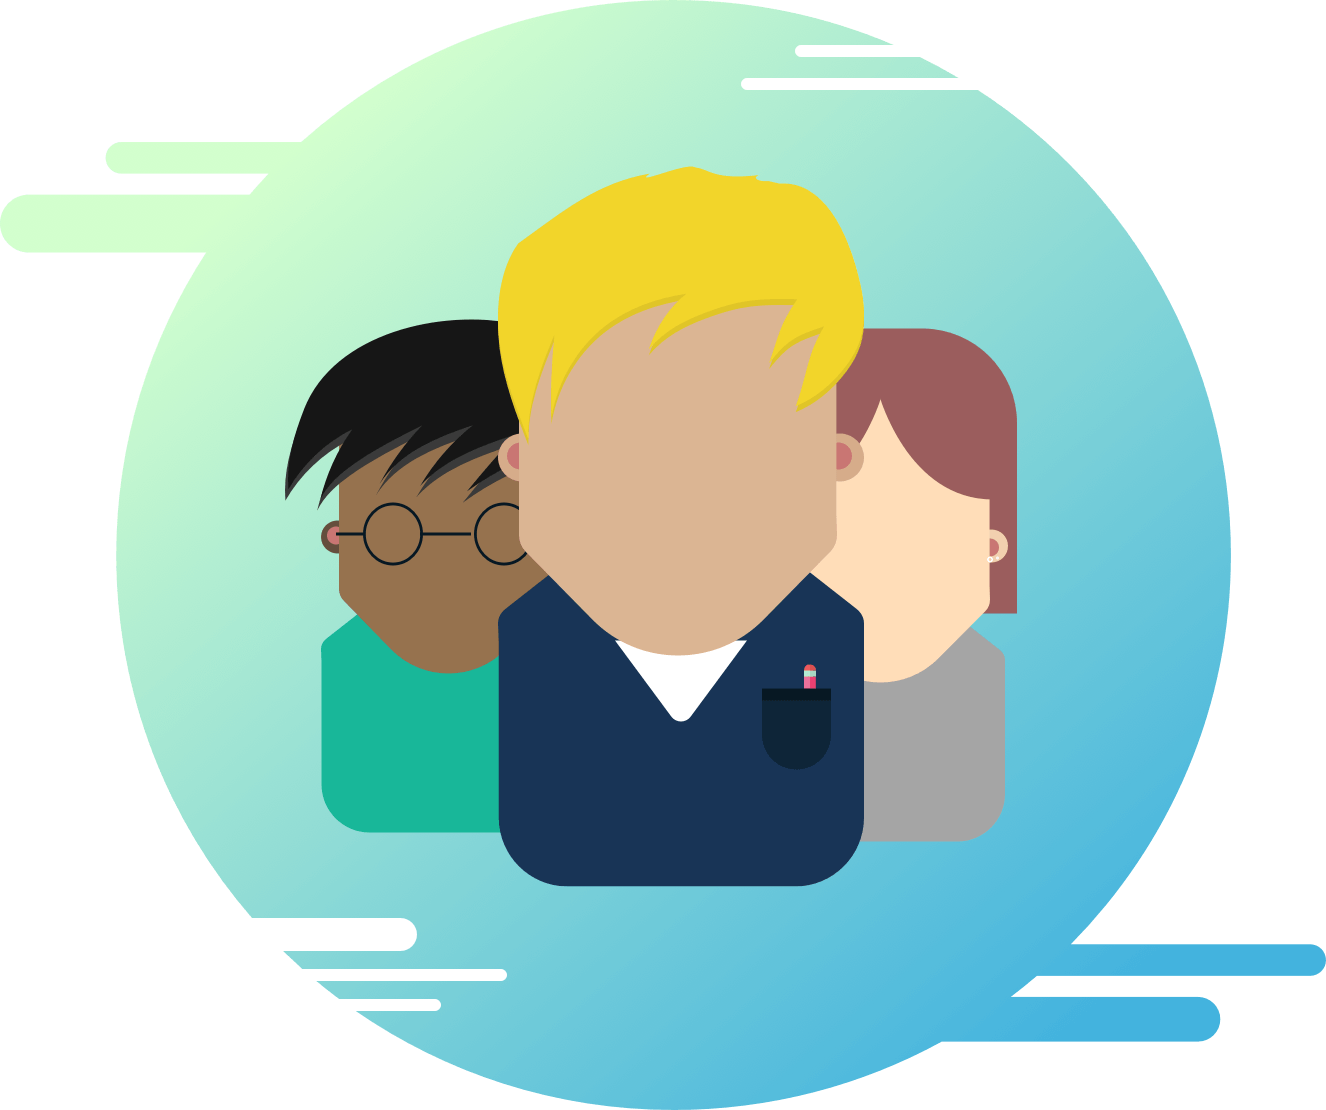 Bubble image for the careers page, it contains three people illustrations